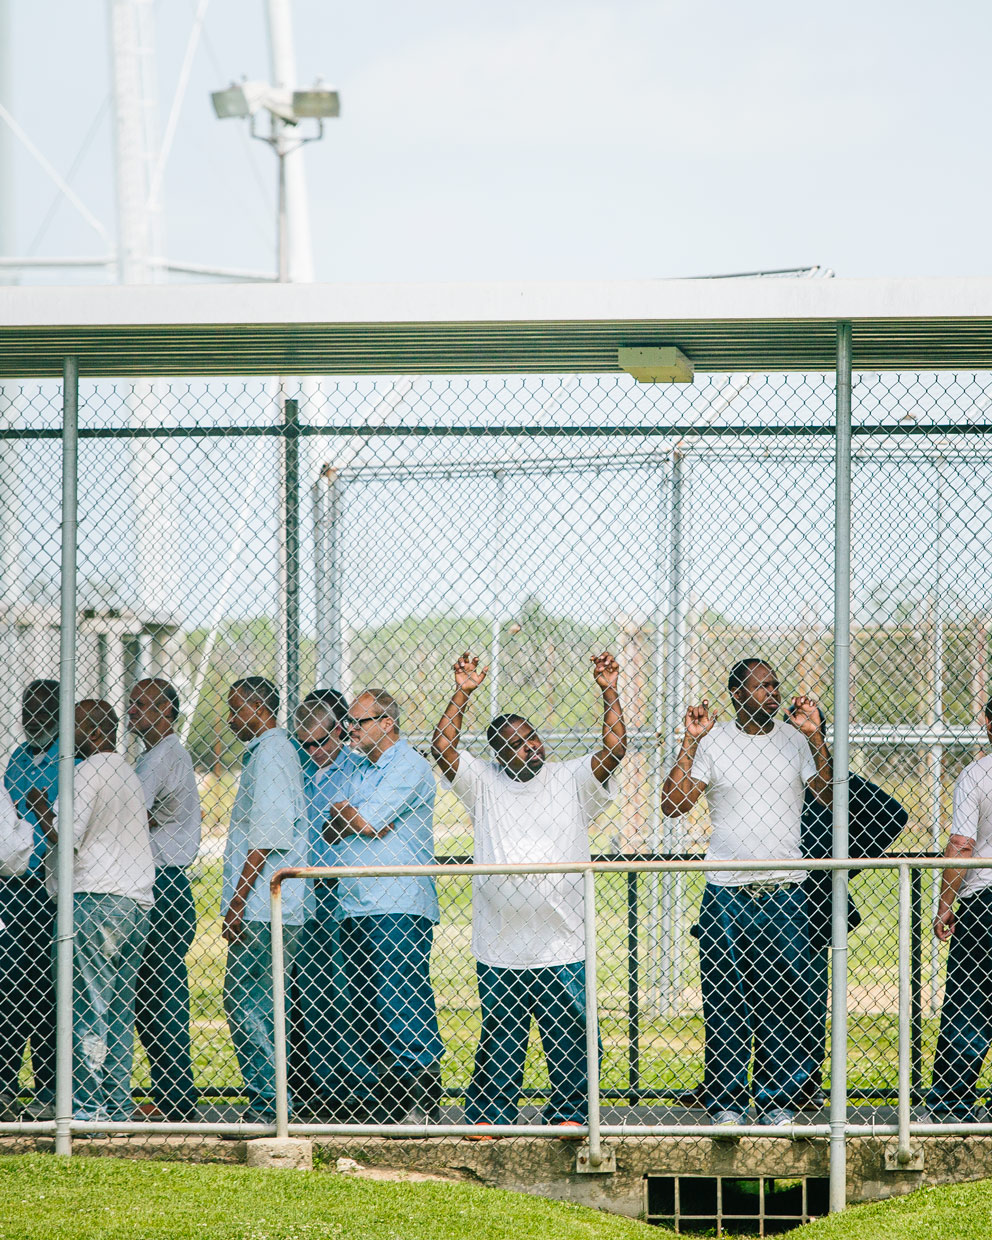 New Orleans Photojournalist and Editorial Photographer Edmund D. Fountain - Louisiana Prisons for The Wall Street Journal